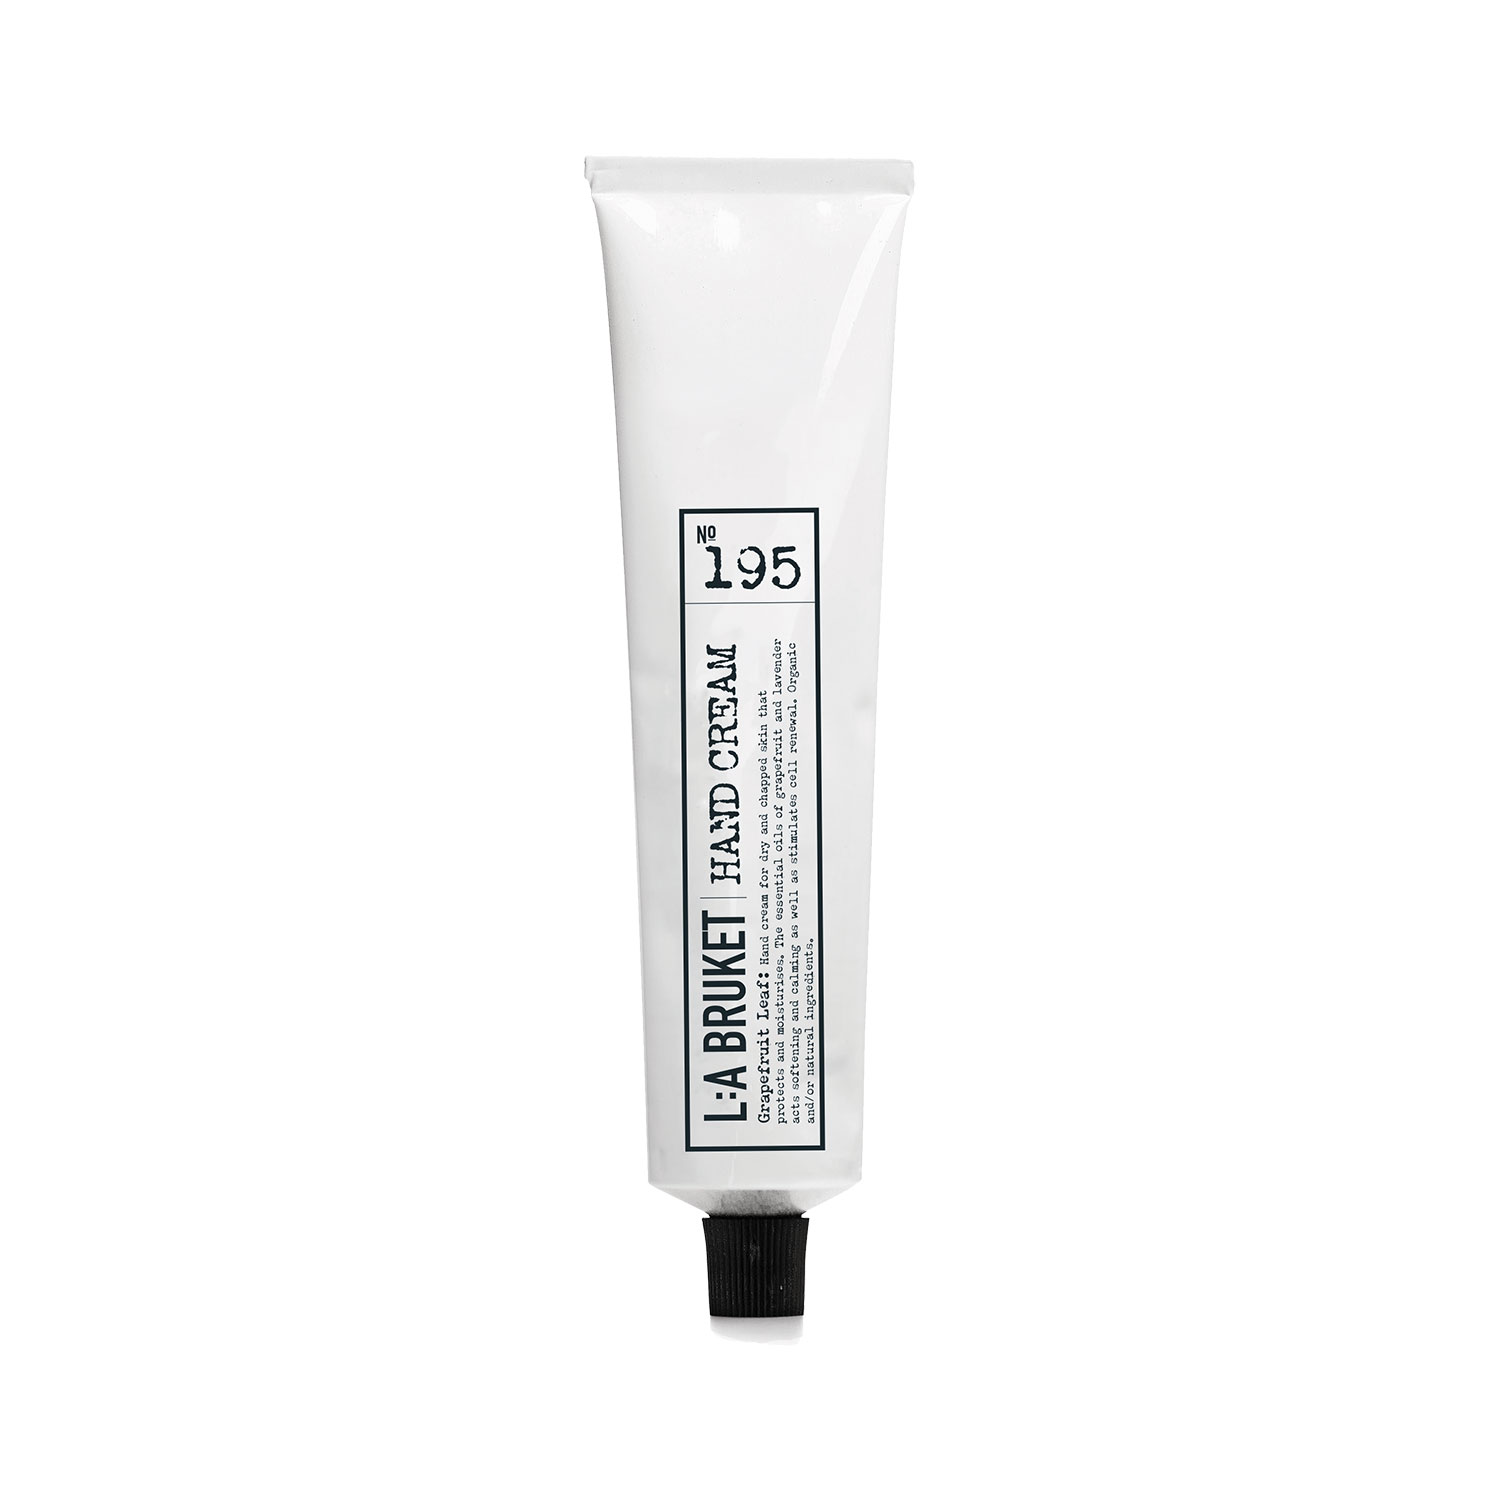 Handcrème 70 ml, grapefruit leaf